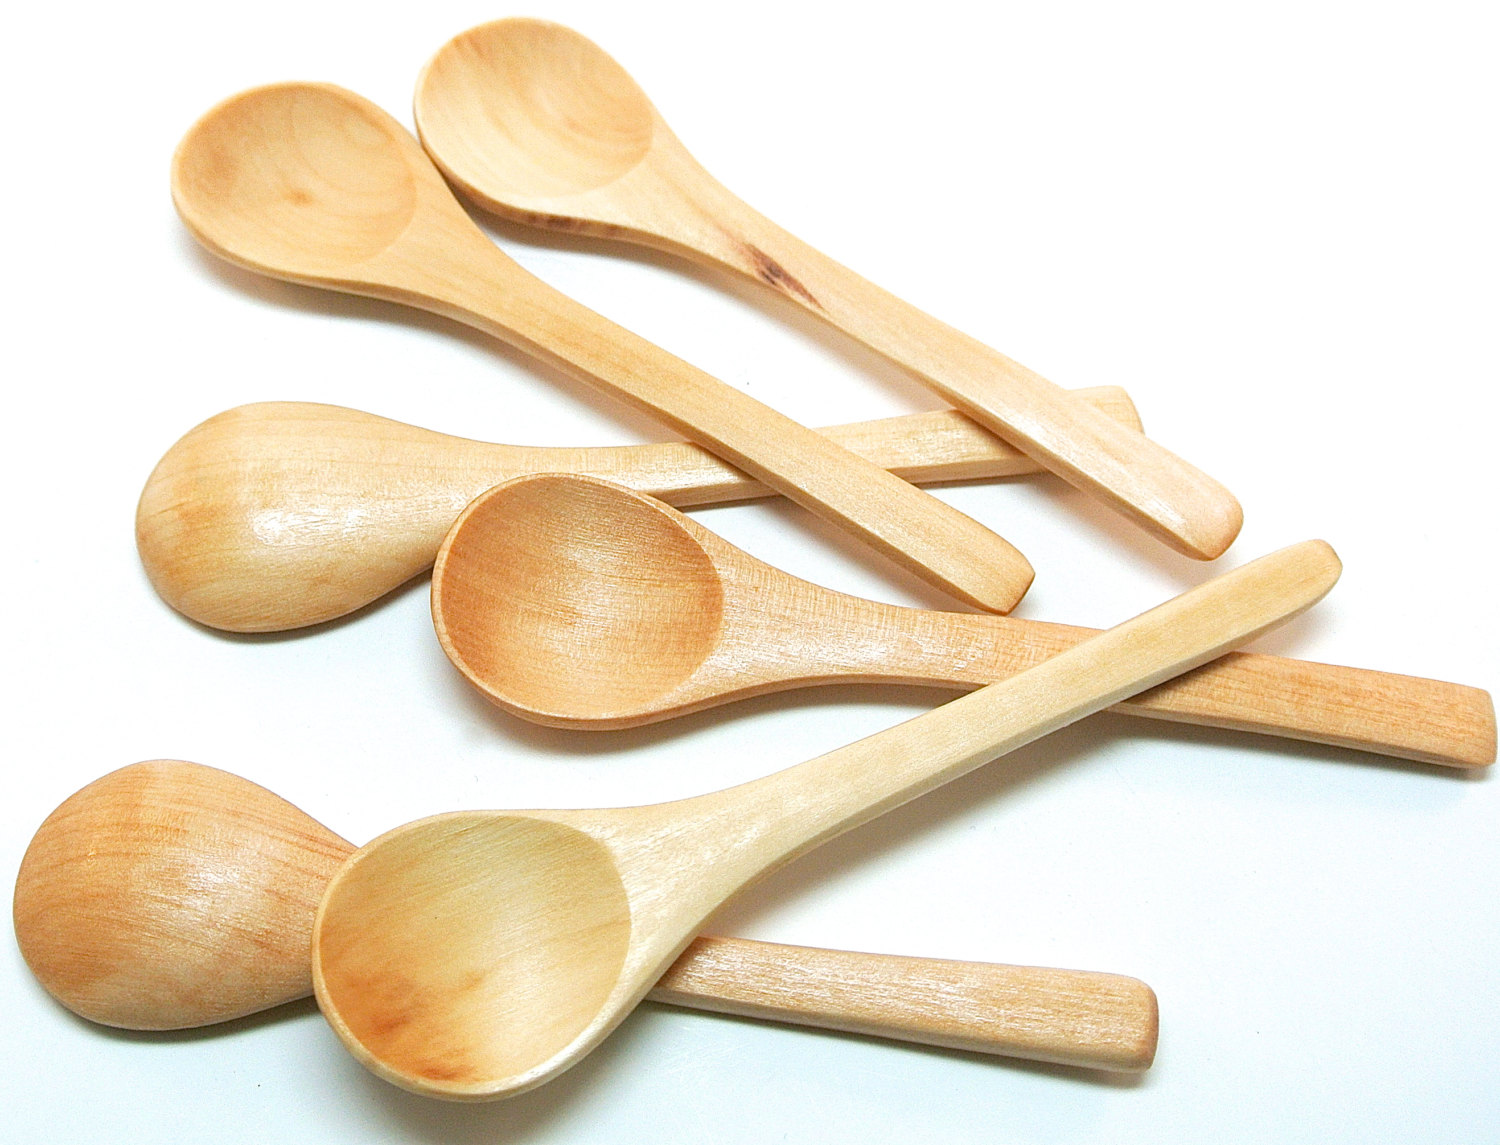 Russian Wooden Small Spoons